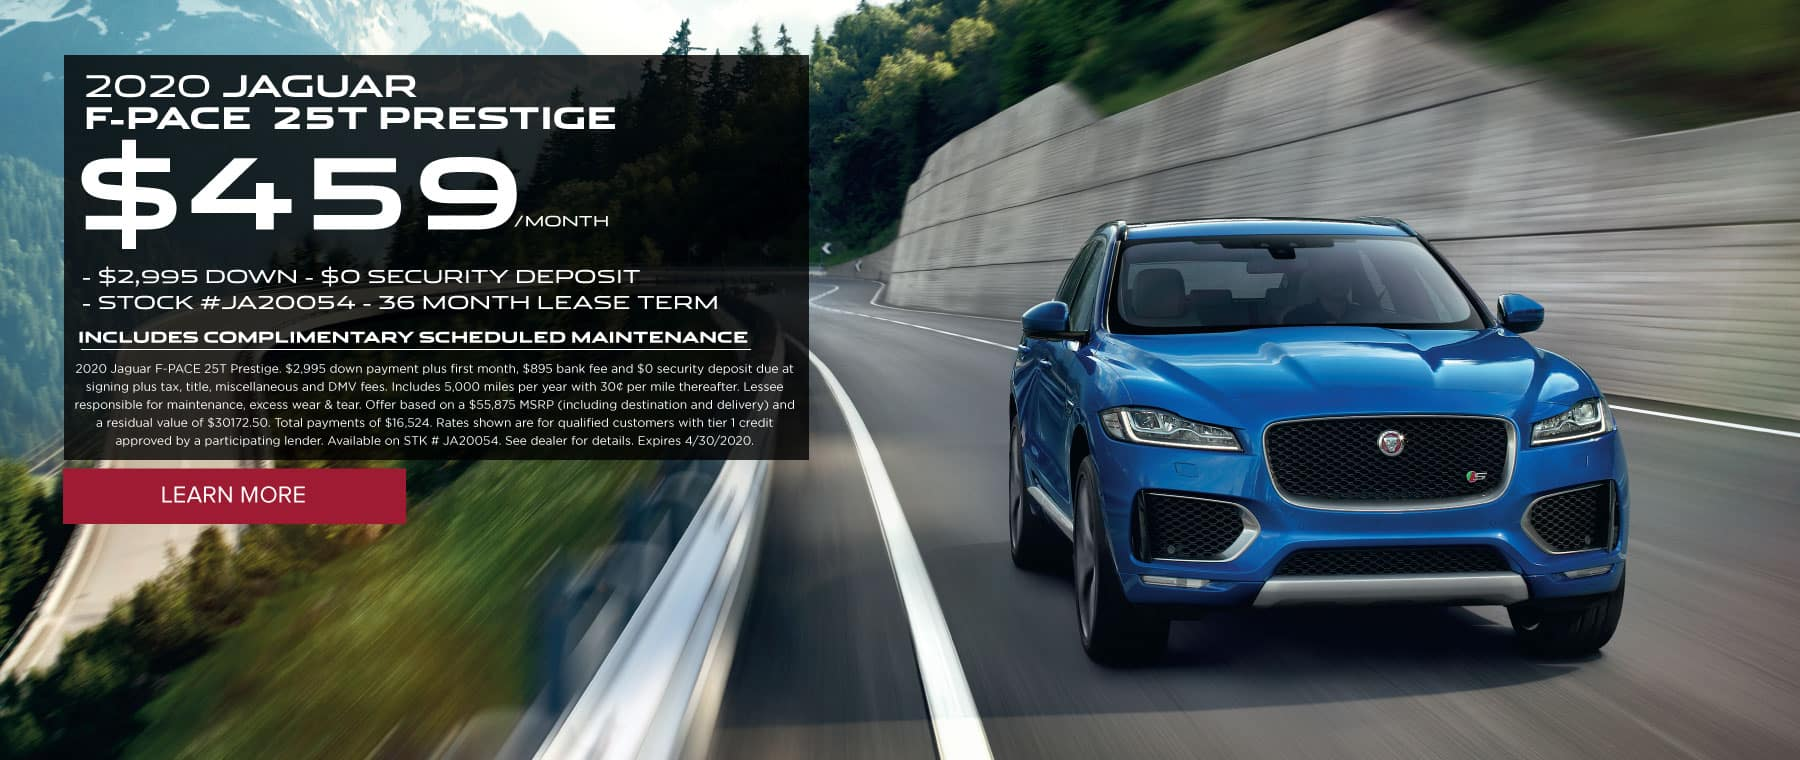 2020 JAGUAR  F-PACE  25T PREMIUM. $399 per month. $2995 down. $0 security deposit. Stock #JA20036. 39 month lease term. $1000 bonus credit. Includes complimentary scheduled maintenance. 2020 Jaguar F-PACE 25T Premium. $2,995 down payment plus first month, $895 bank fee and $0 security deposit due at signing plus tax, title, miscellaneous and DMV fees. Includes 5,000 miles per year with 30¢ per mile thereafter. Lessee responsible for maintenance, excess wear & tear. Offer based on a $52,925 MSRP (including destination and delivery) and a residual value of $29,108.75. Total payments of $15,561. Rates shown are for qualified customers with tier 1 credit approved by a participating lender. Available on STK # JA20036. See dealer for details. Expires 3/2/2020. Click to learn more. Blue F-PACE driving through snow